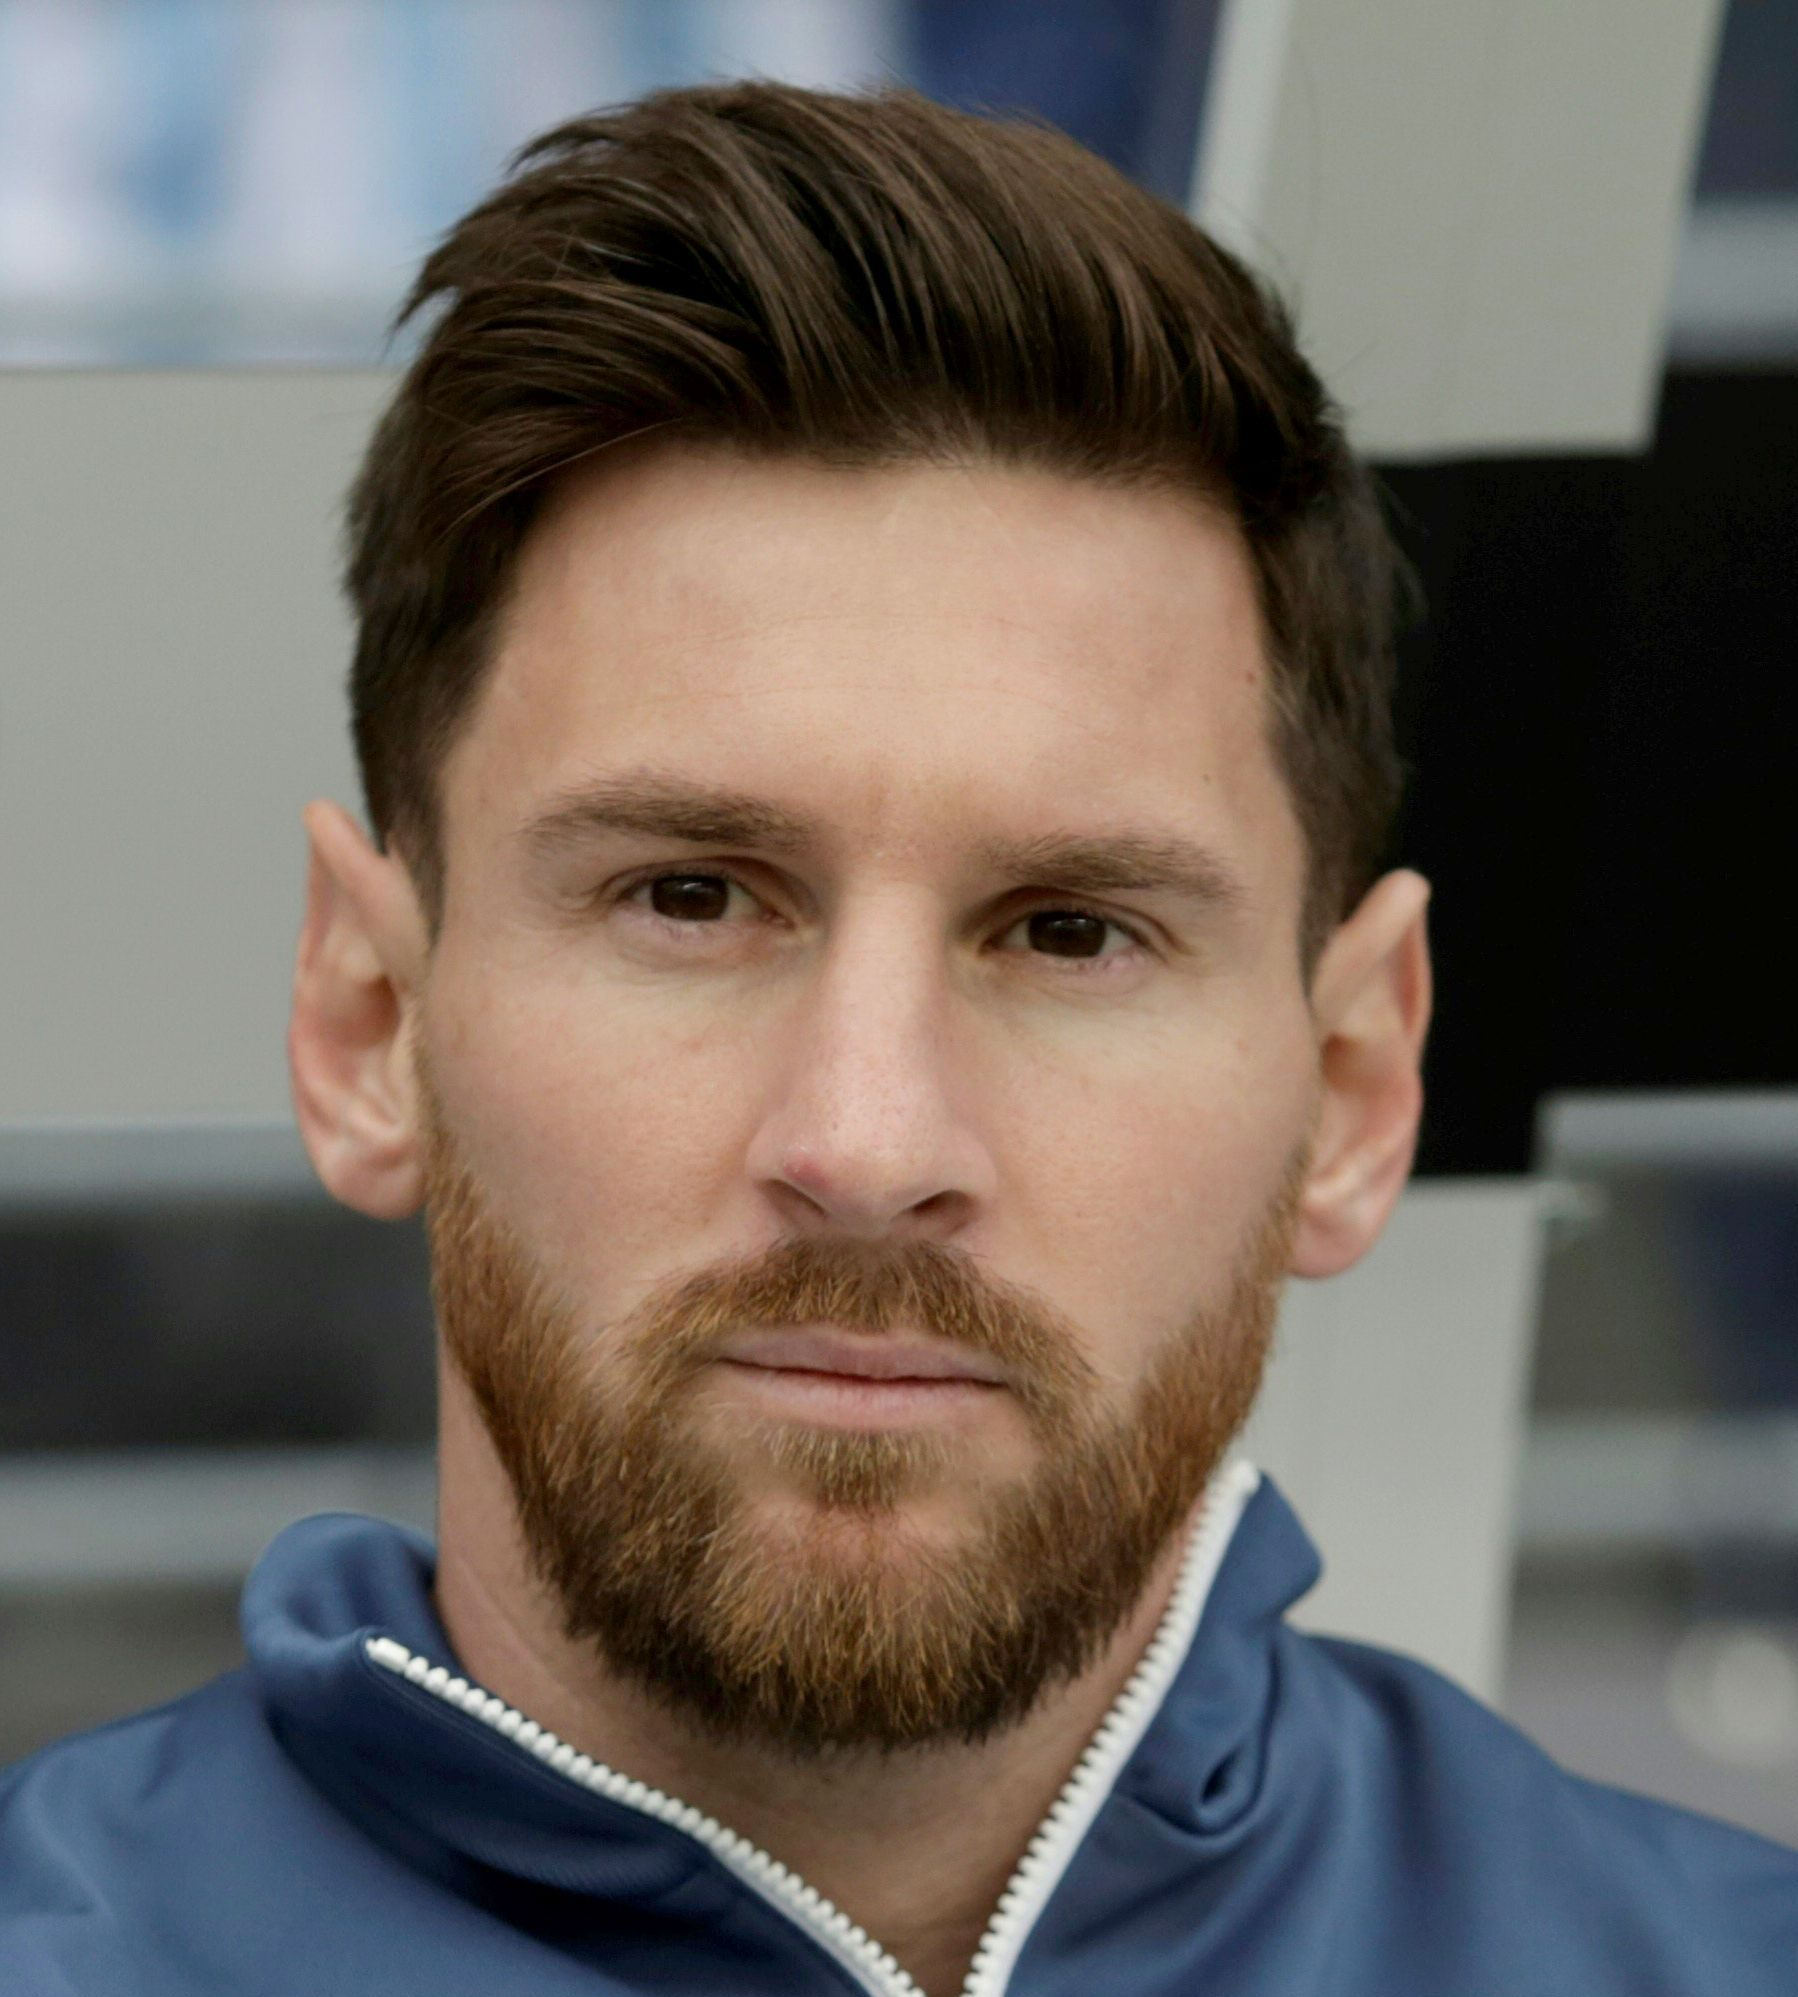 Lionel Messi Haircut